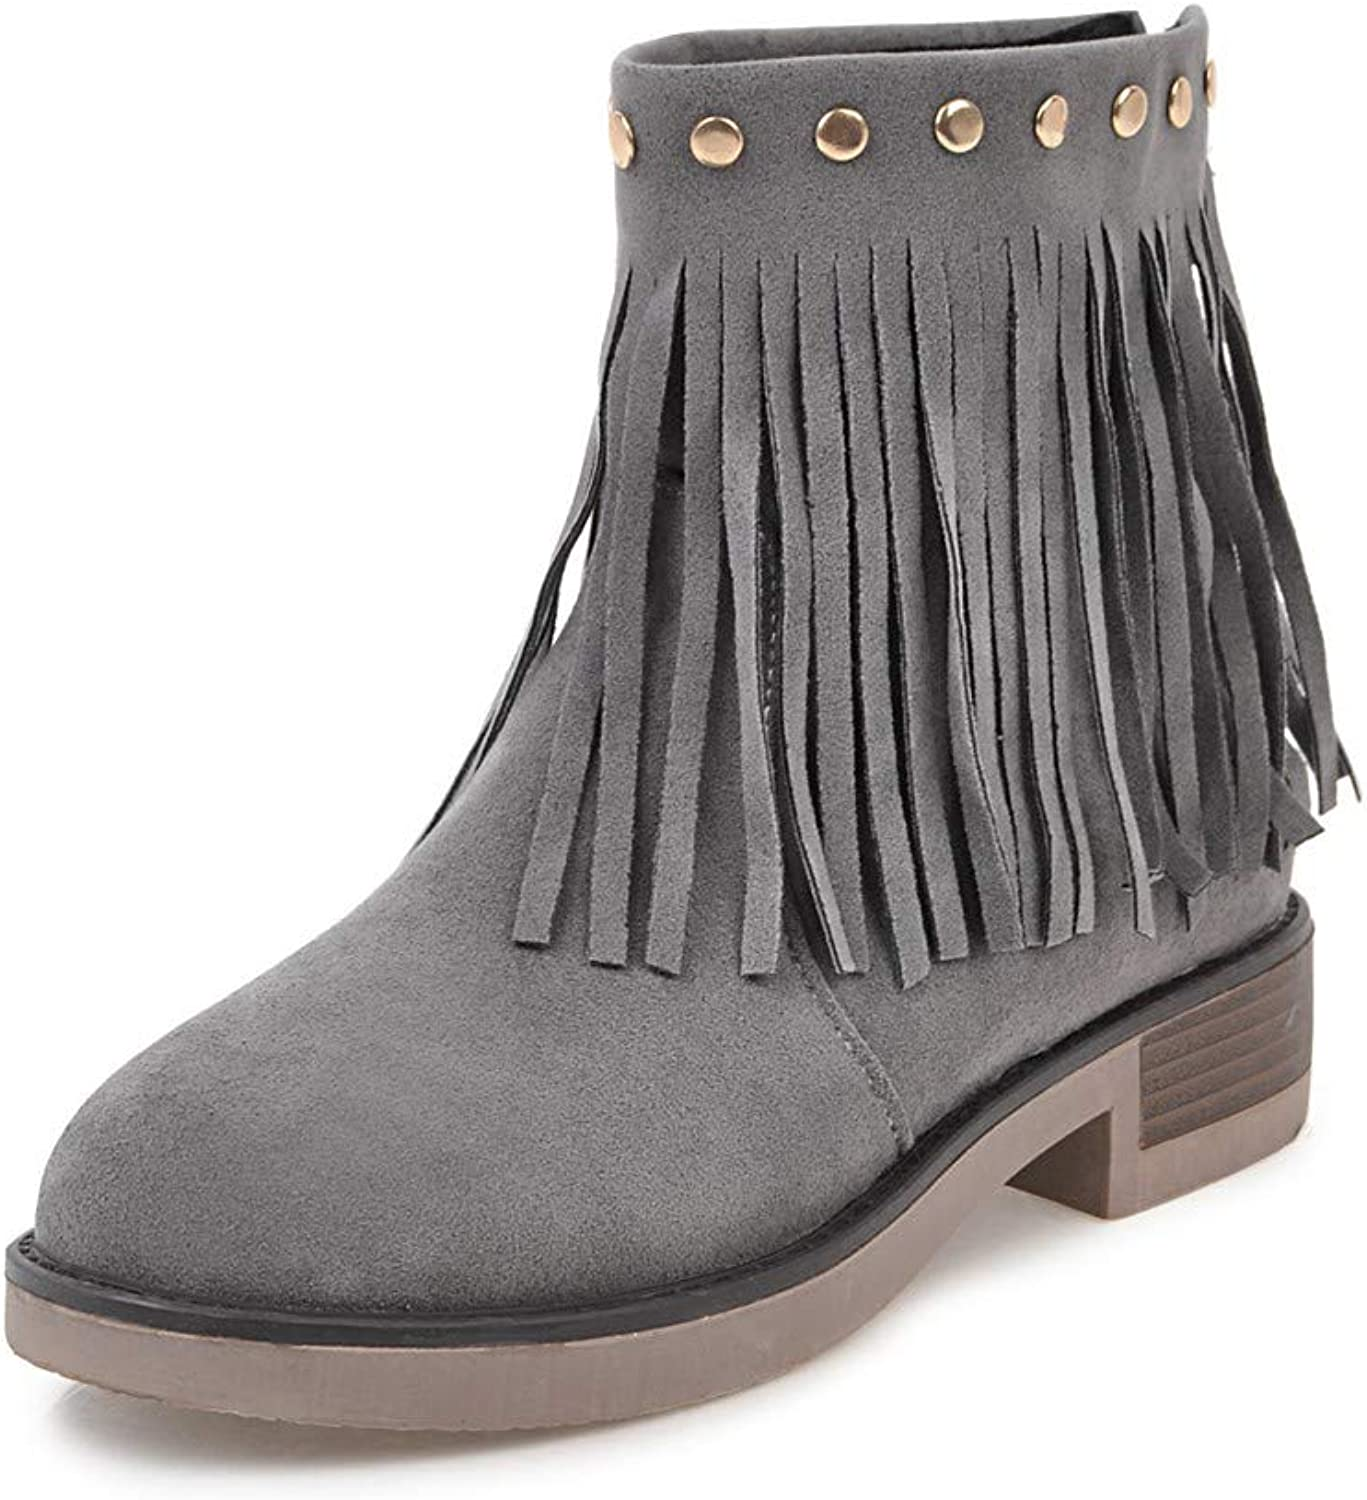 Women's Booties, Thick Heel Zipper Tassel Fashion Ankle Boots Ladies Academy Low-Heel Martin Boots (color   A, Size   40)